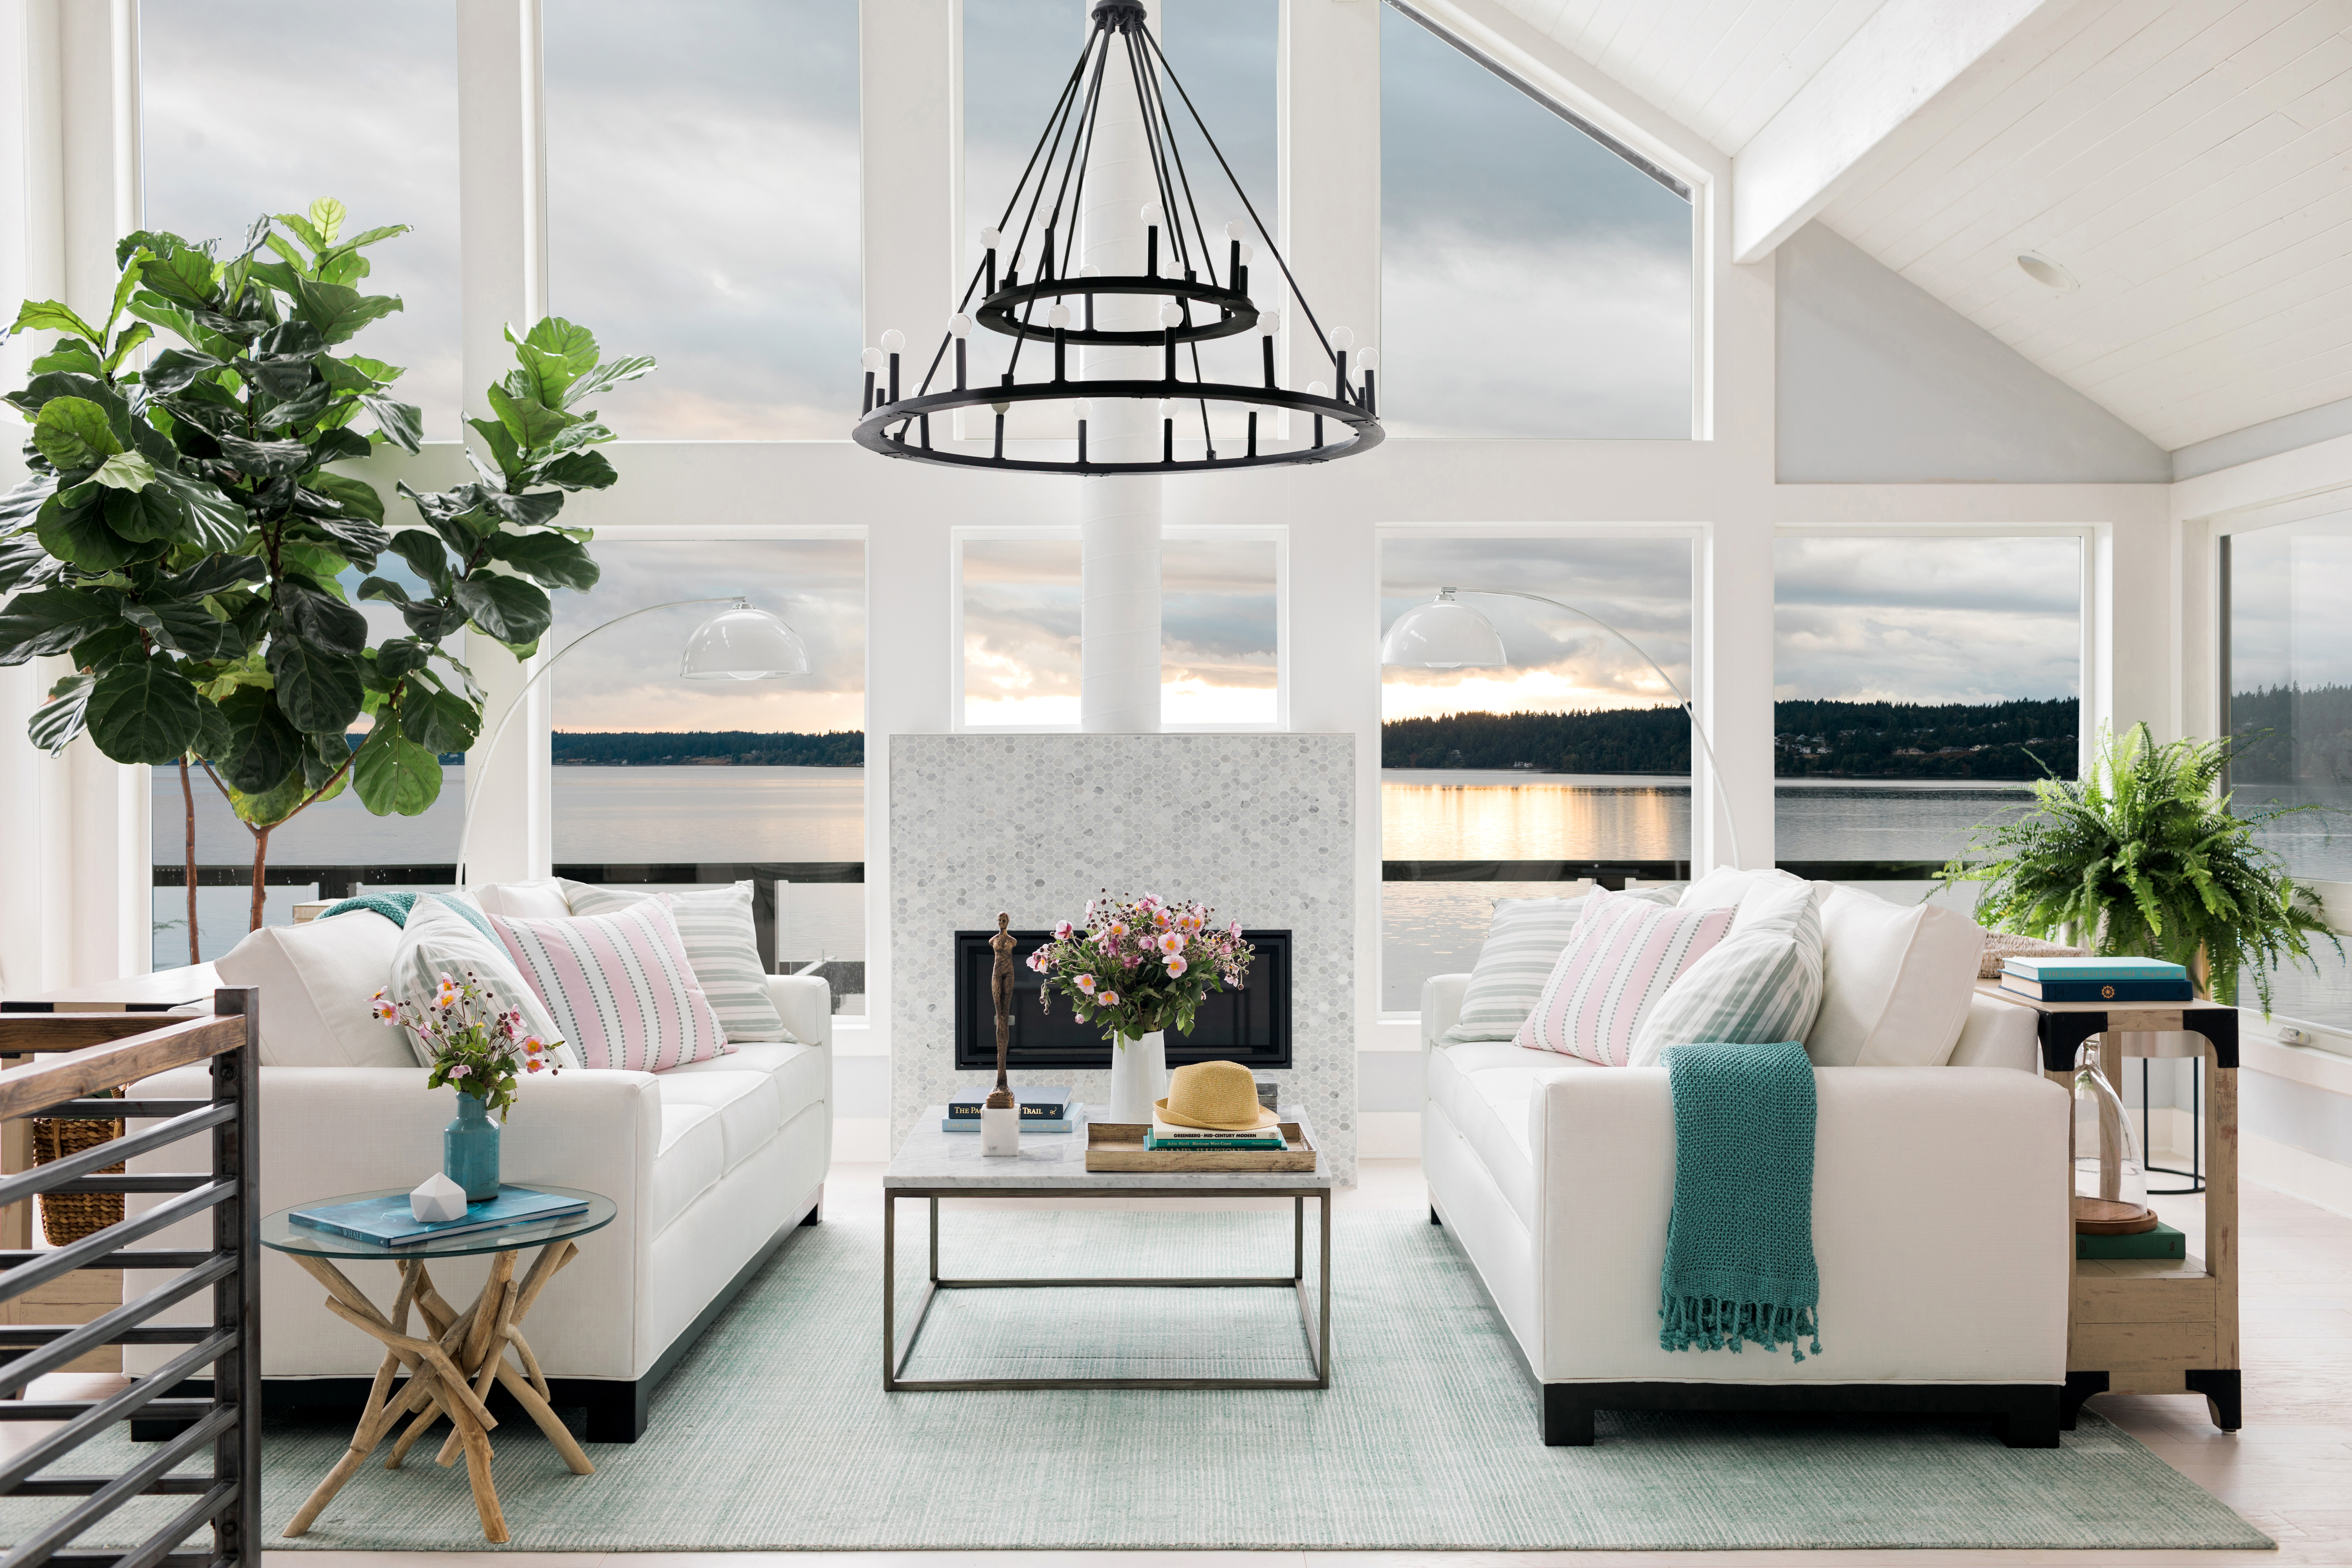 Wayfair Fully Furnishes Spectacular HGTV Dream Home 2018 | Business Wire